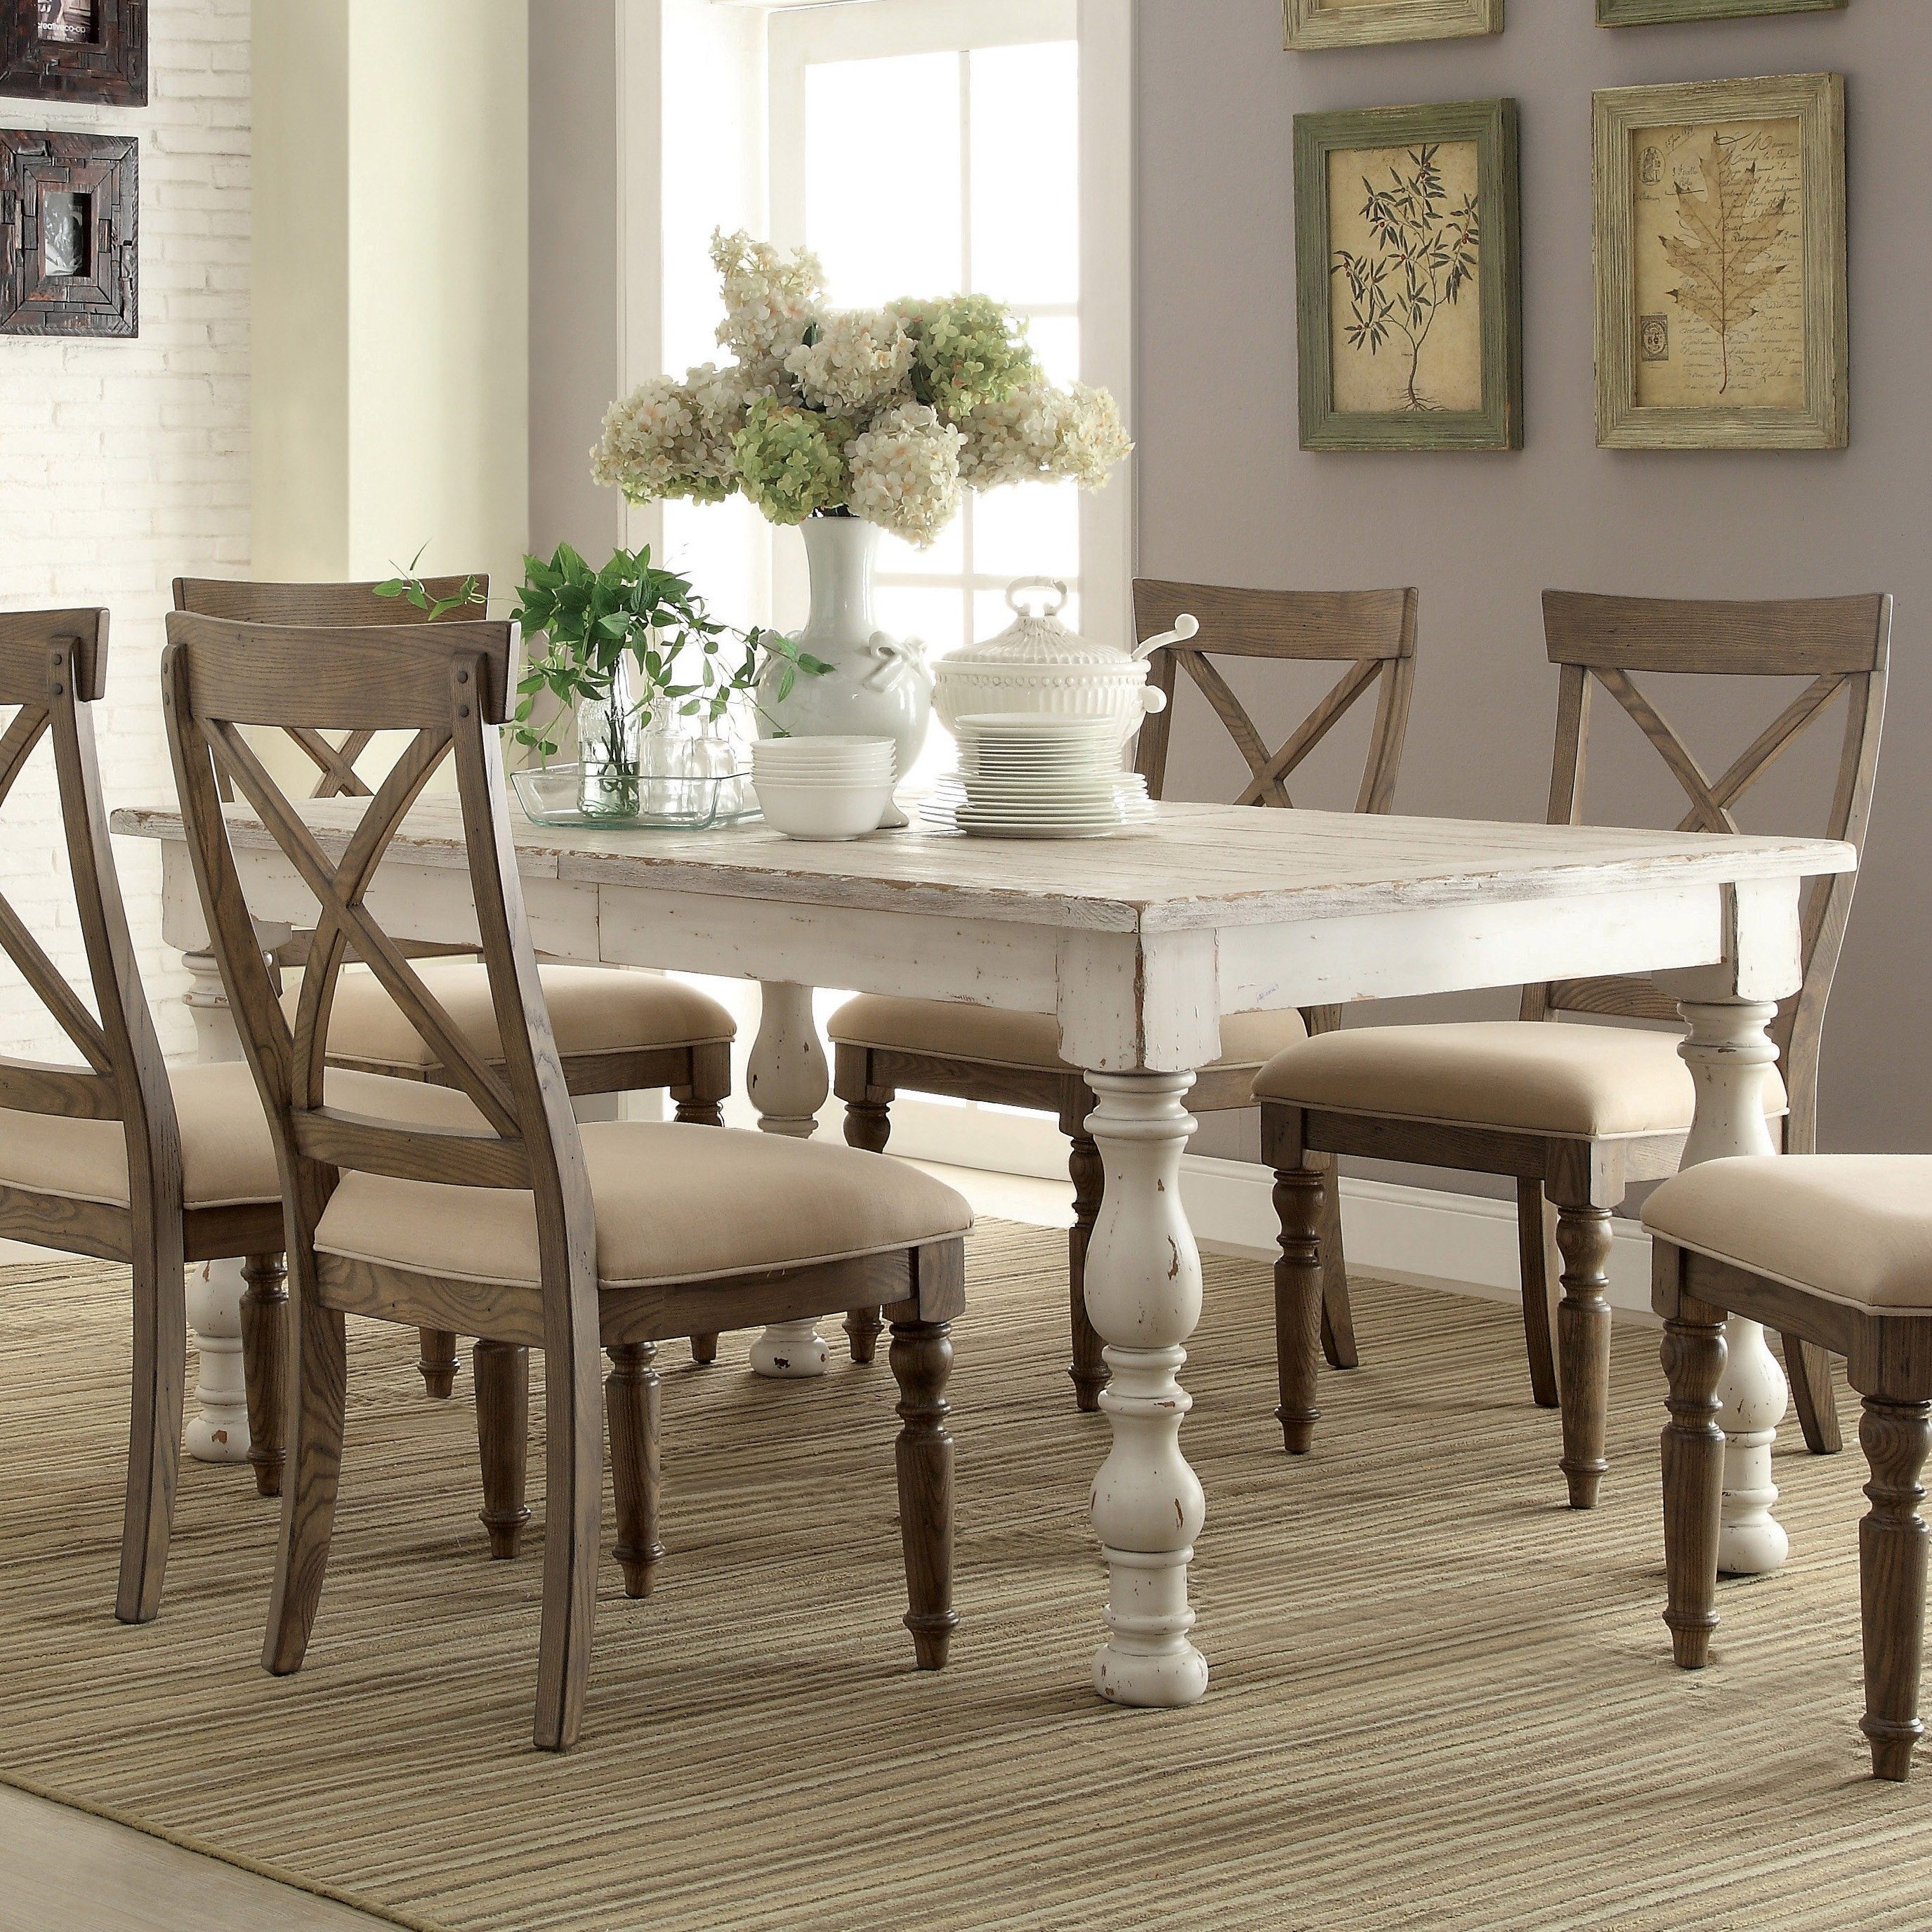 White dining room table - Aberdeen Wood Rectangular Dining Table And Chairs In Weathered Worn White By Riverside Furniture